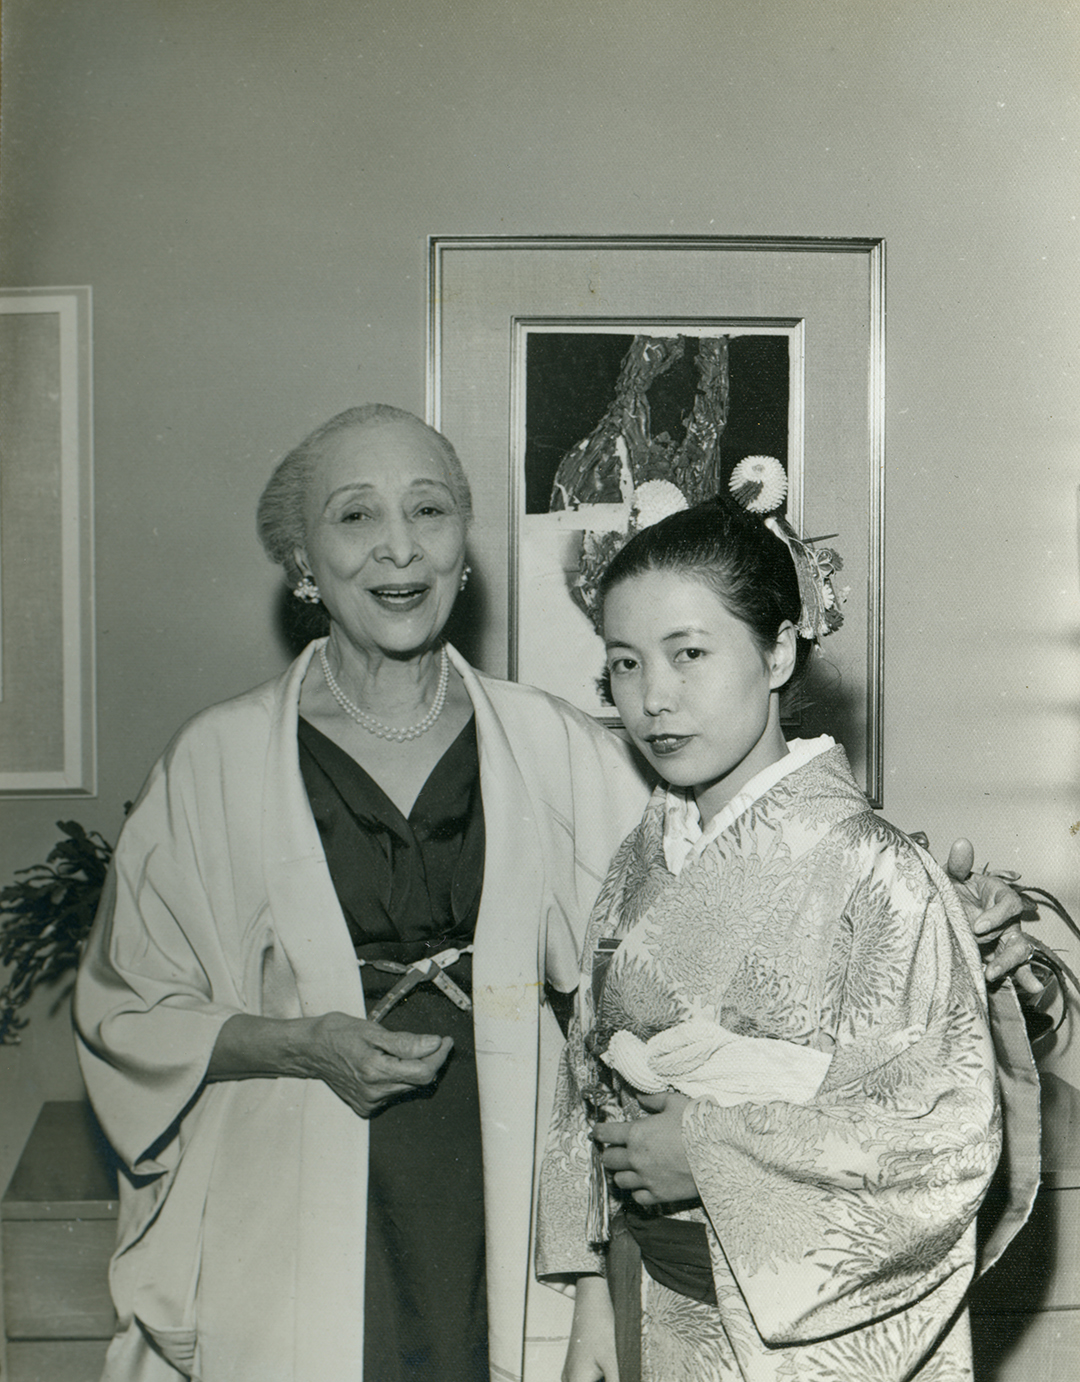 Kusama with Zoë Dusanne at her solo exhibition at the Dusanne Gallery, Seattle, December 1957.